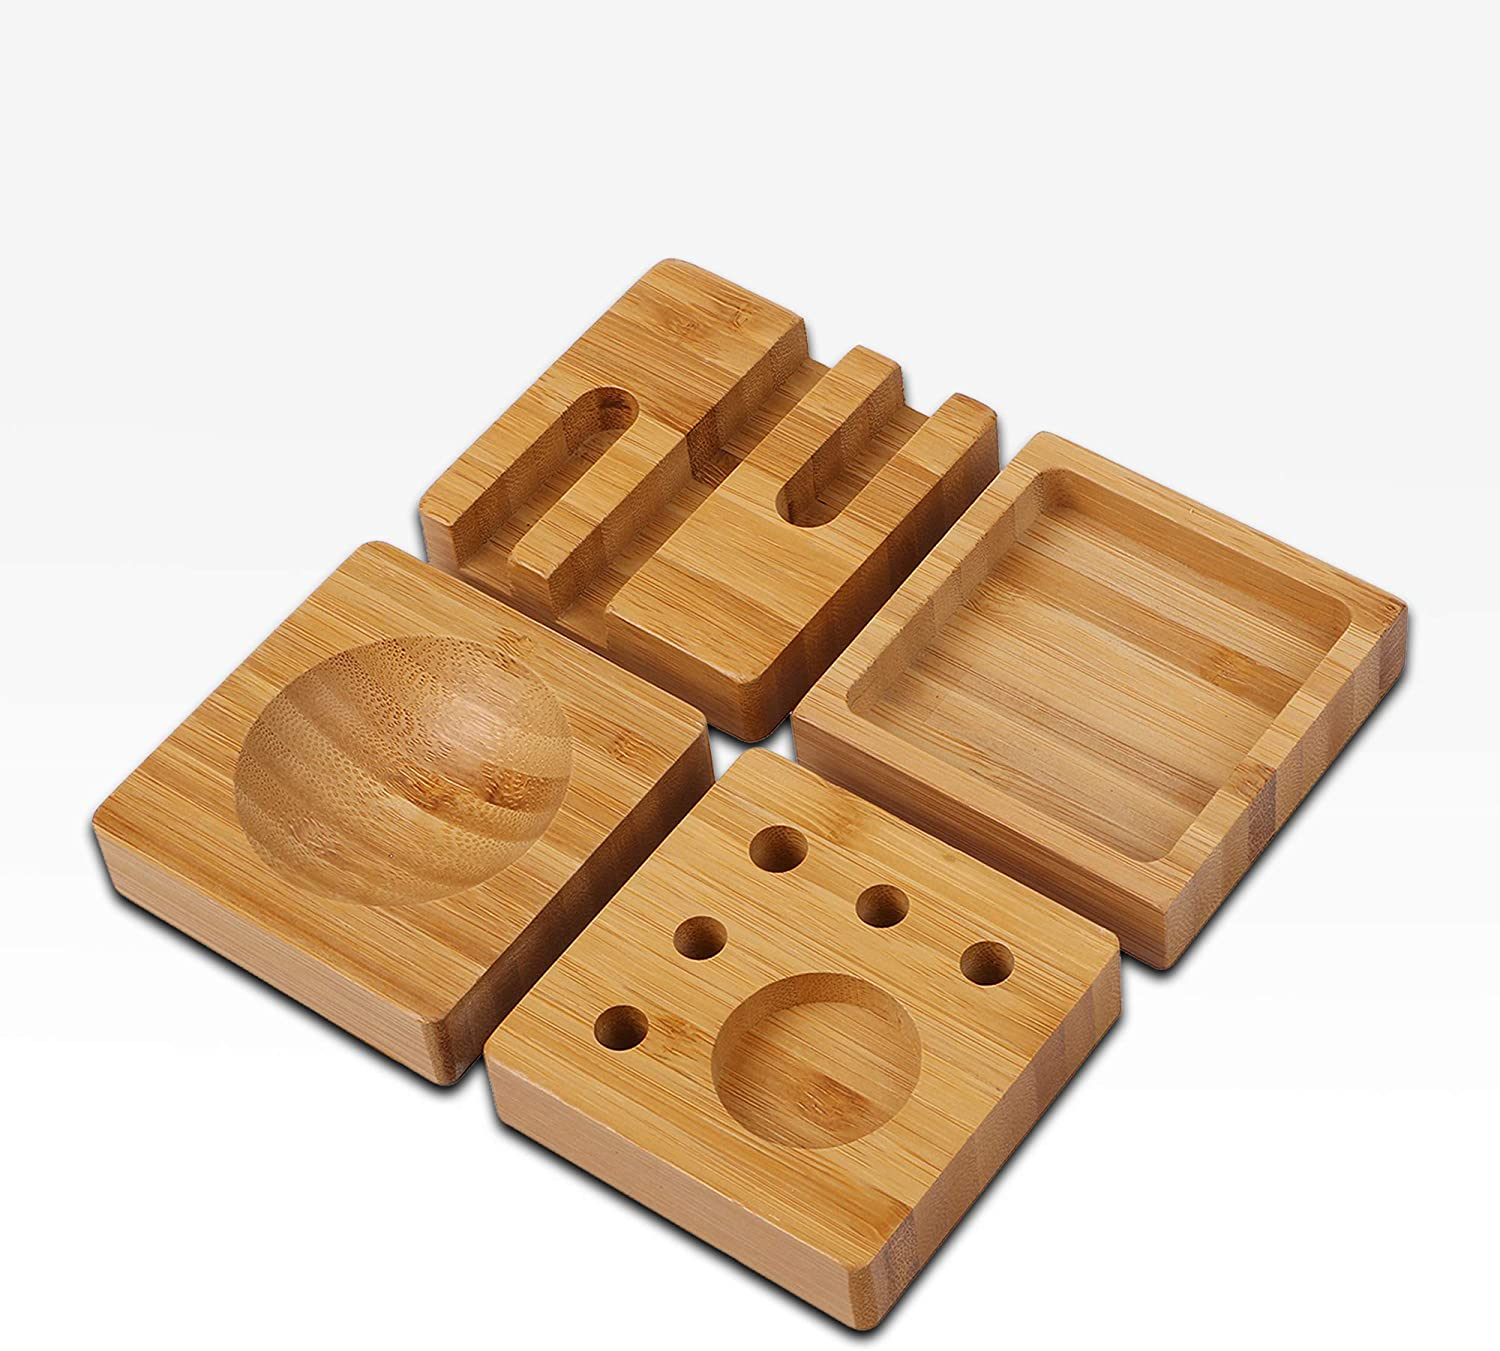 NEW 4-in-1 Bamboo Desk Organizer Blocks Set Pens and Paper Clips /| Unique and Fun Stationary Storage Solution for Kitchen 100/% Natural Wood Smartphone Stand Eco-friendly Home and Office